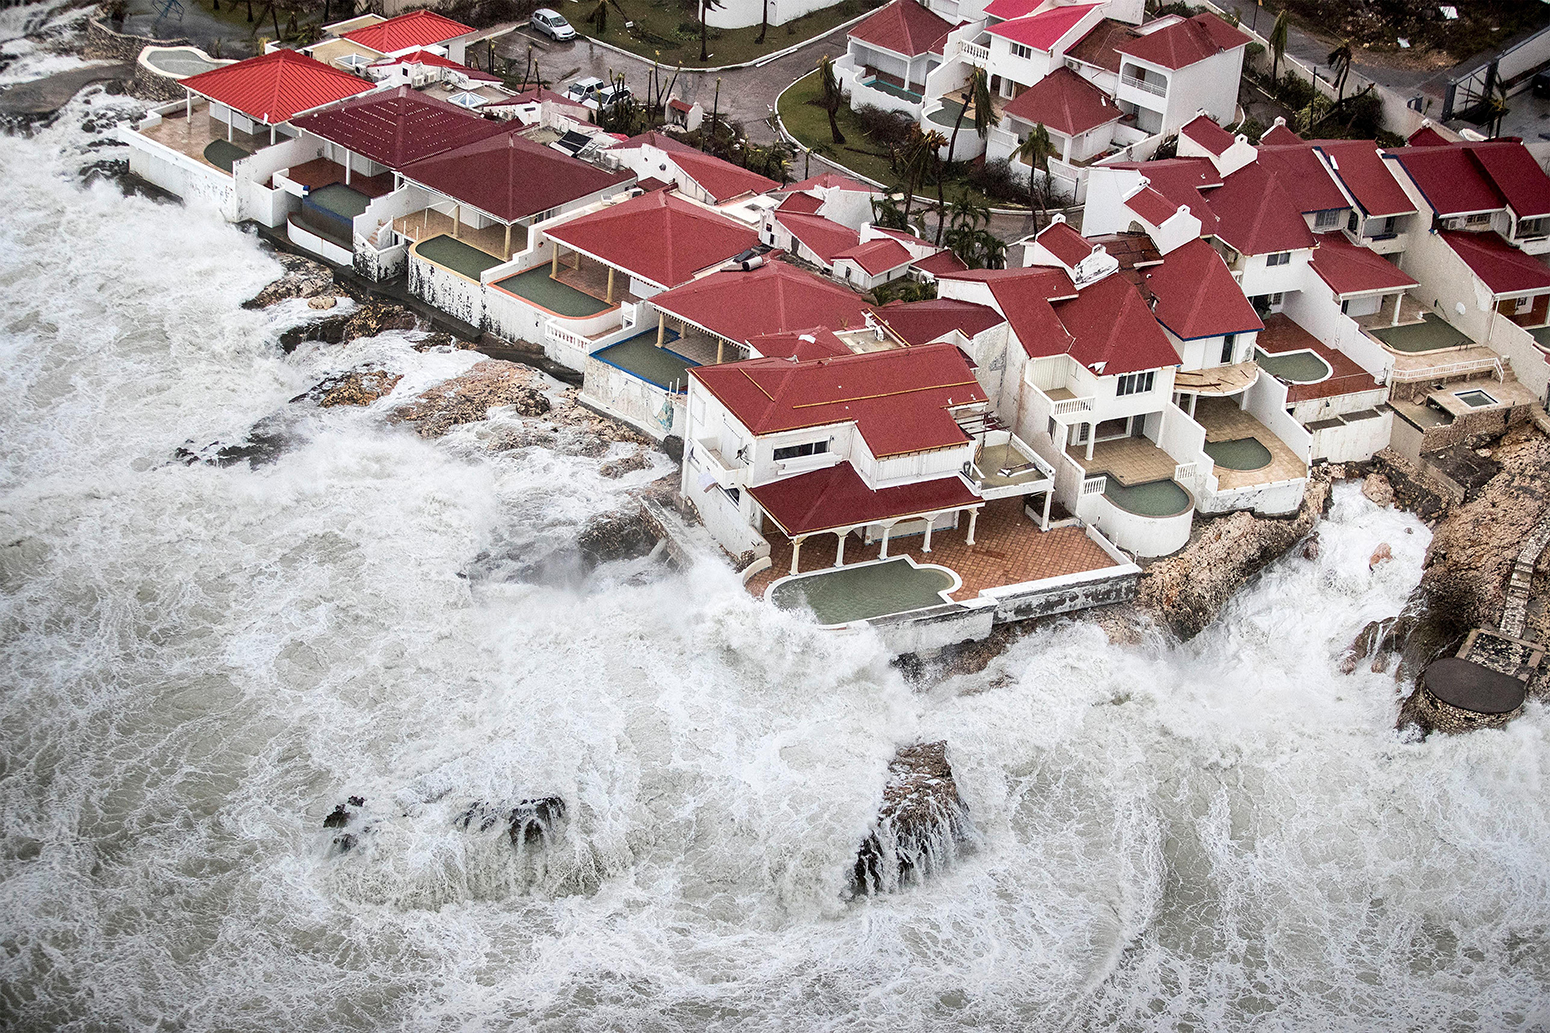 K4YM7F Philipsburg, St Maarten. 06th Sep, 2017. Storm serge and waves lash a resort on the Dutch Island of St. Maarten following a direct hit by Hurricane Irma, a Category 5 storm lashing the Caribbean September 6, 2017 in Philipsburg, St. Maarten. Imra is packing winds of 185-mph making it the strongest hurricane ever recorded in the Atlantic Ocean. (Gerben Van Es/Netherlands Defence Ministry via Planetpix)